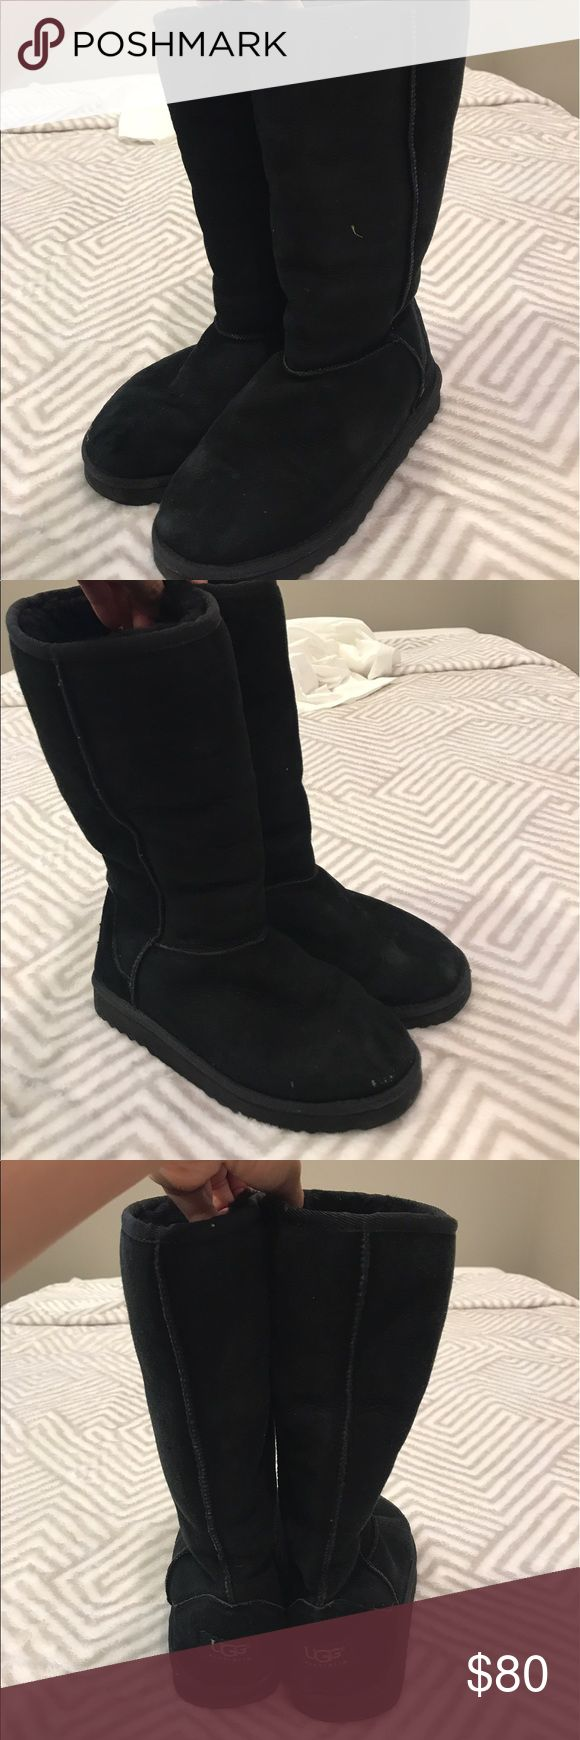 Ugg Classic Tall boot Used, but still has a ton of life in them as I live I hawaii and have only used them on trips UGG Shoes Winter & Rain Boots